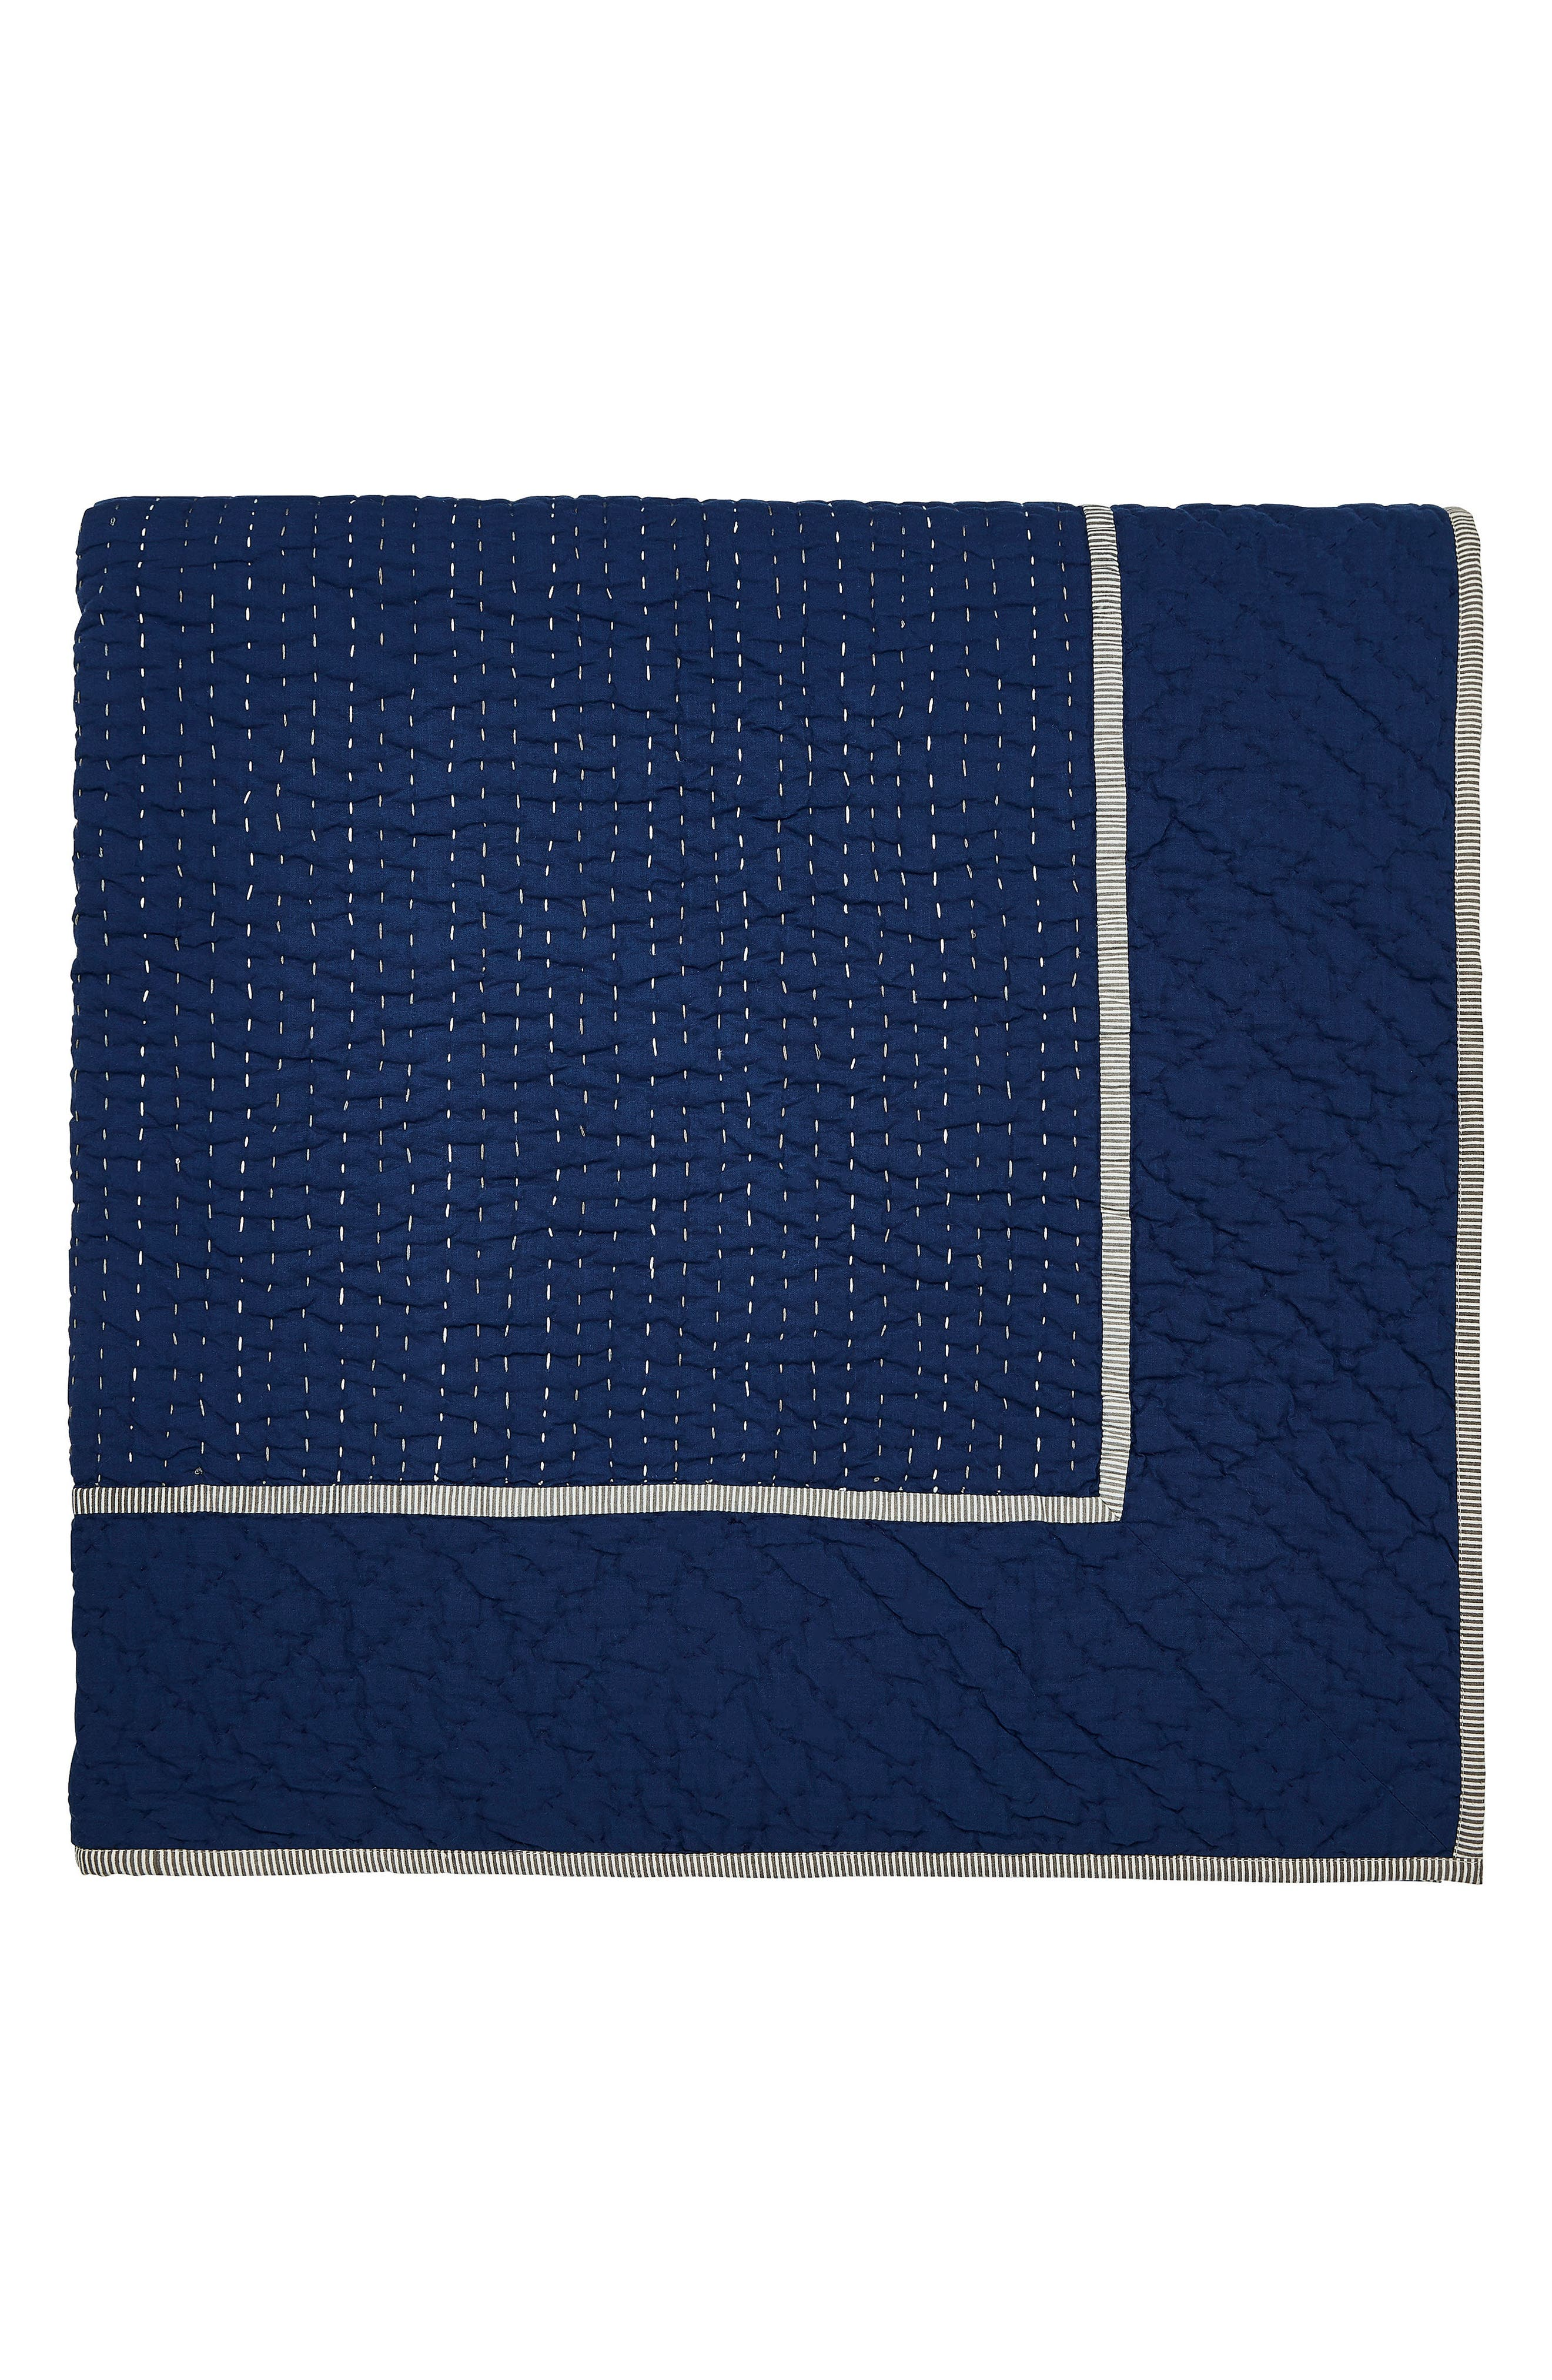 Ila Hand Stitched Kantha Quilt,                             Alternate thumbnail 7, color,                             Navy